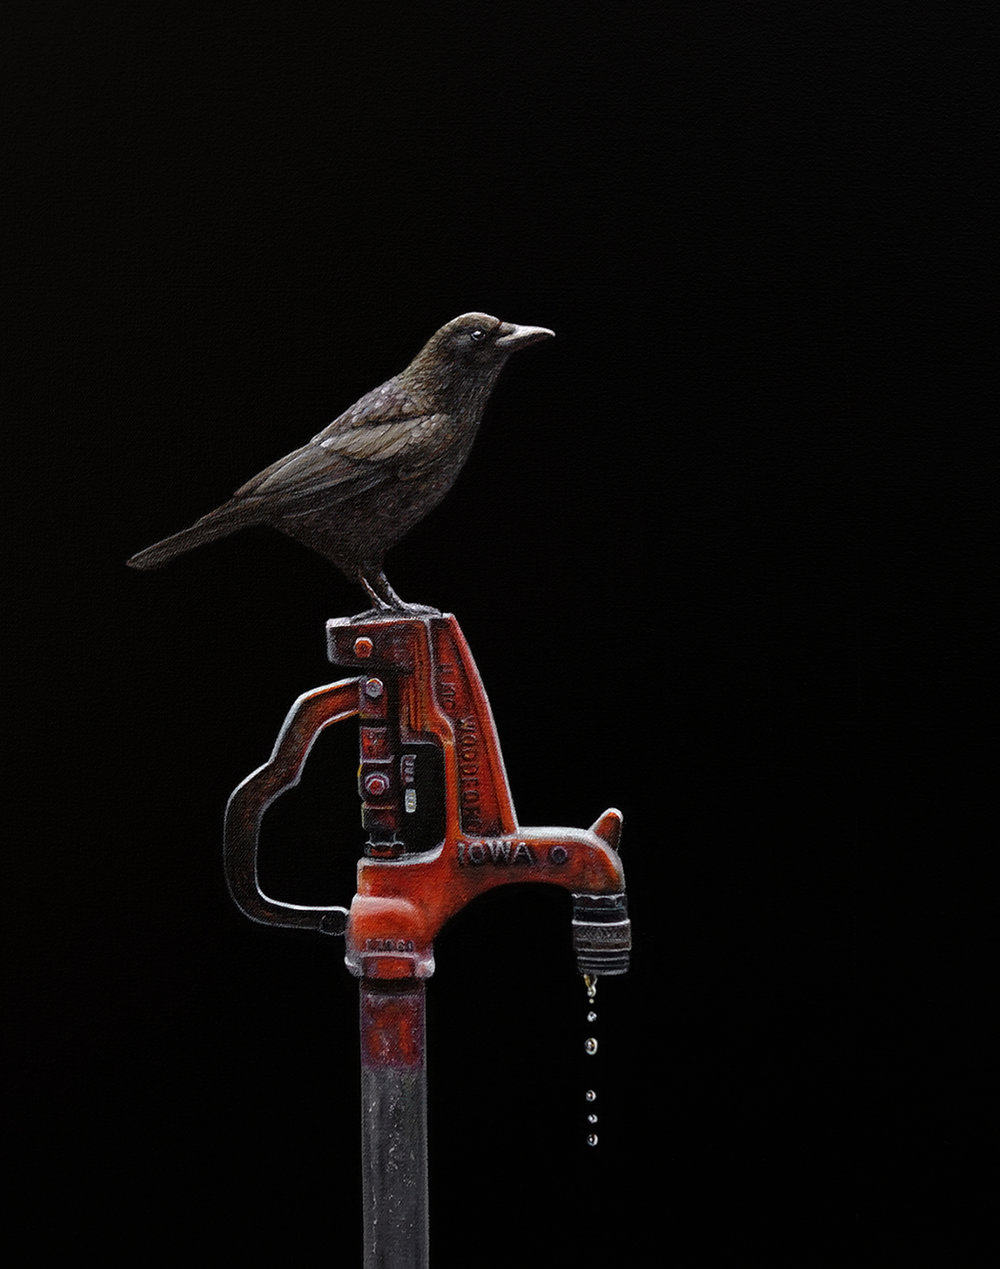 Caw  |  16 x 20  |  Oil on canvas